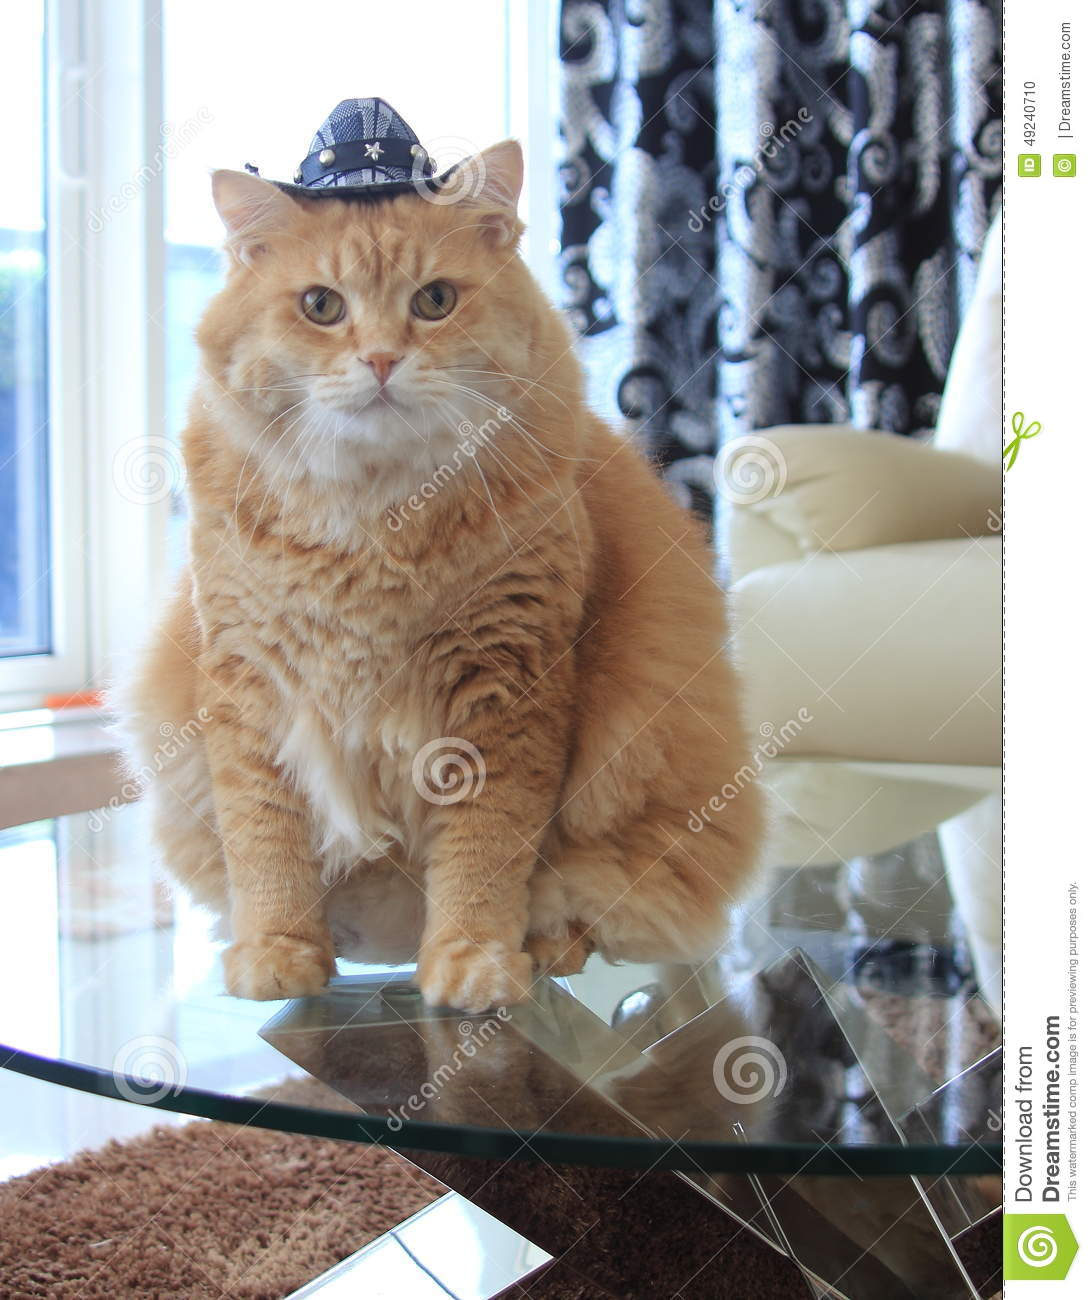 cookie cat with cowboy hat stock photo image 49240710. Black Bedroom Furniture Sets. Home Design Ideas